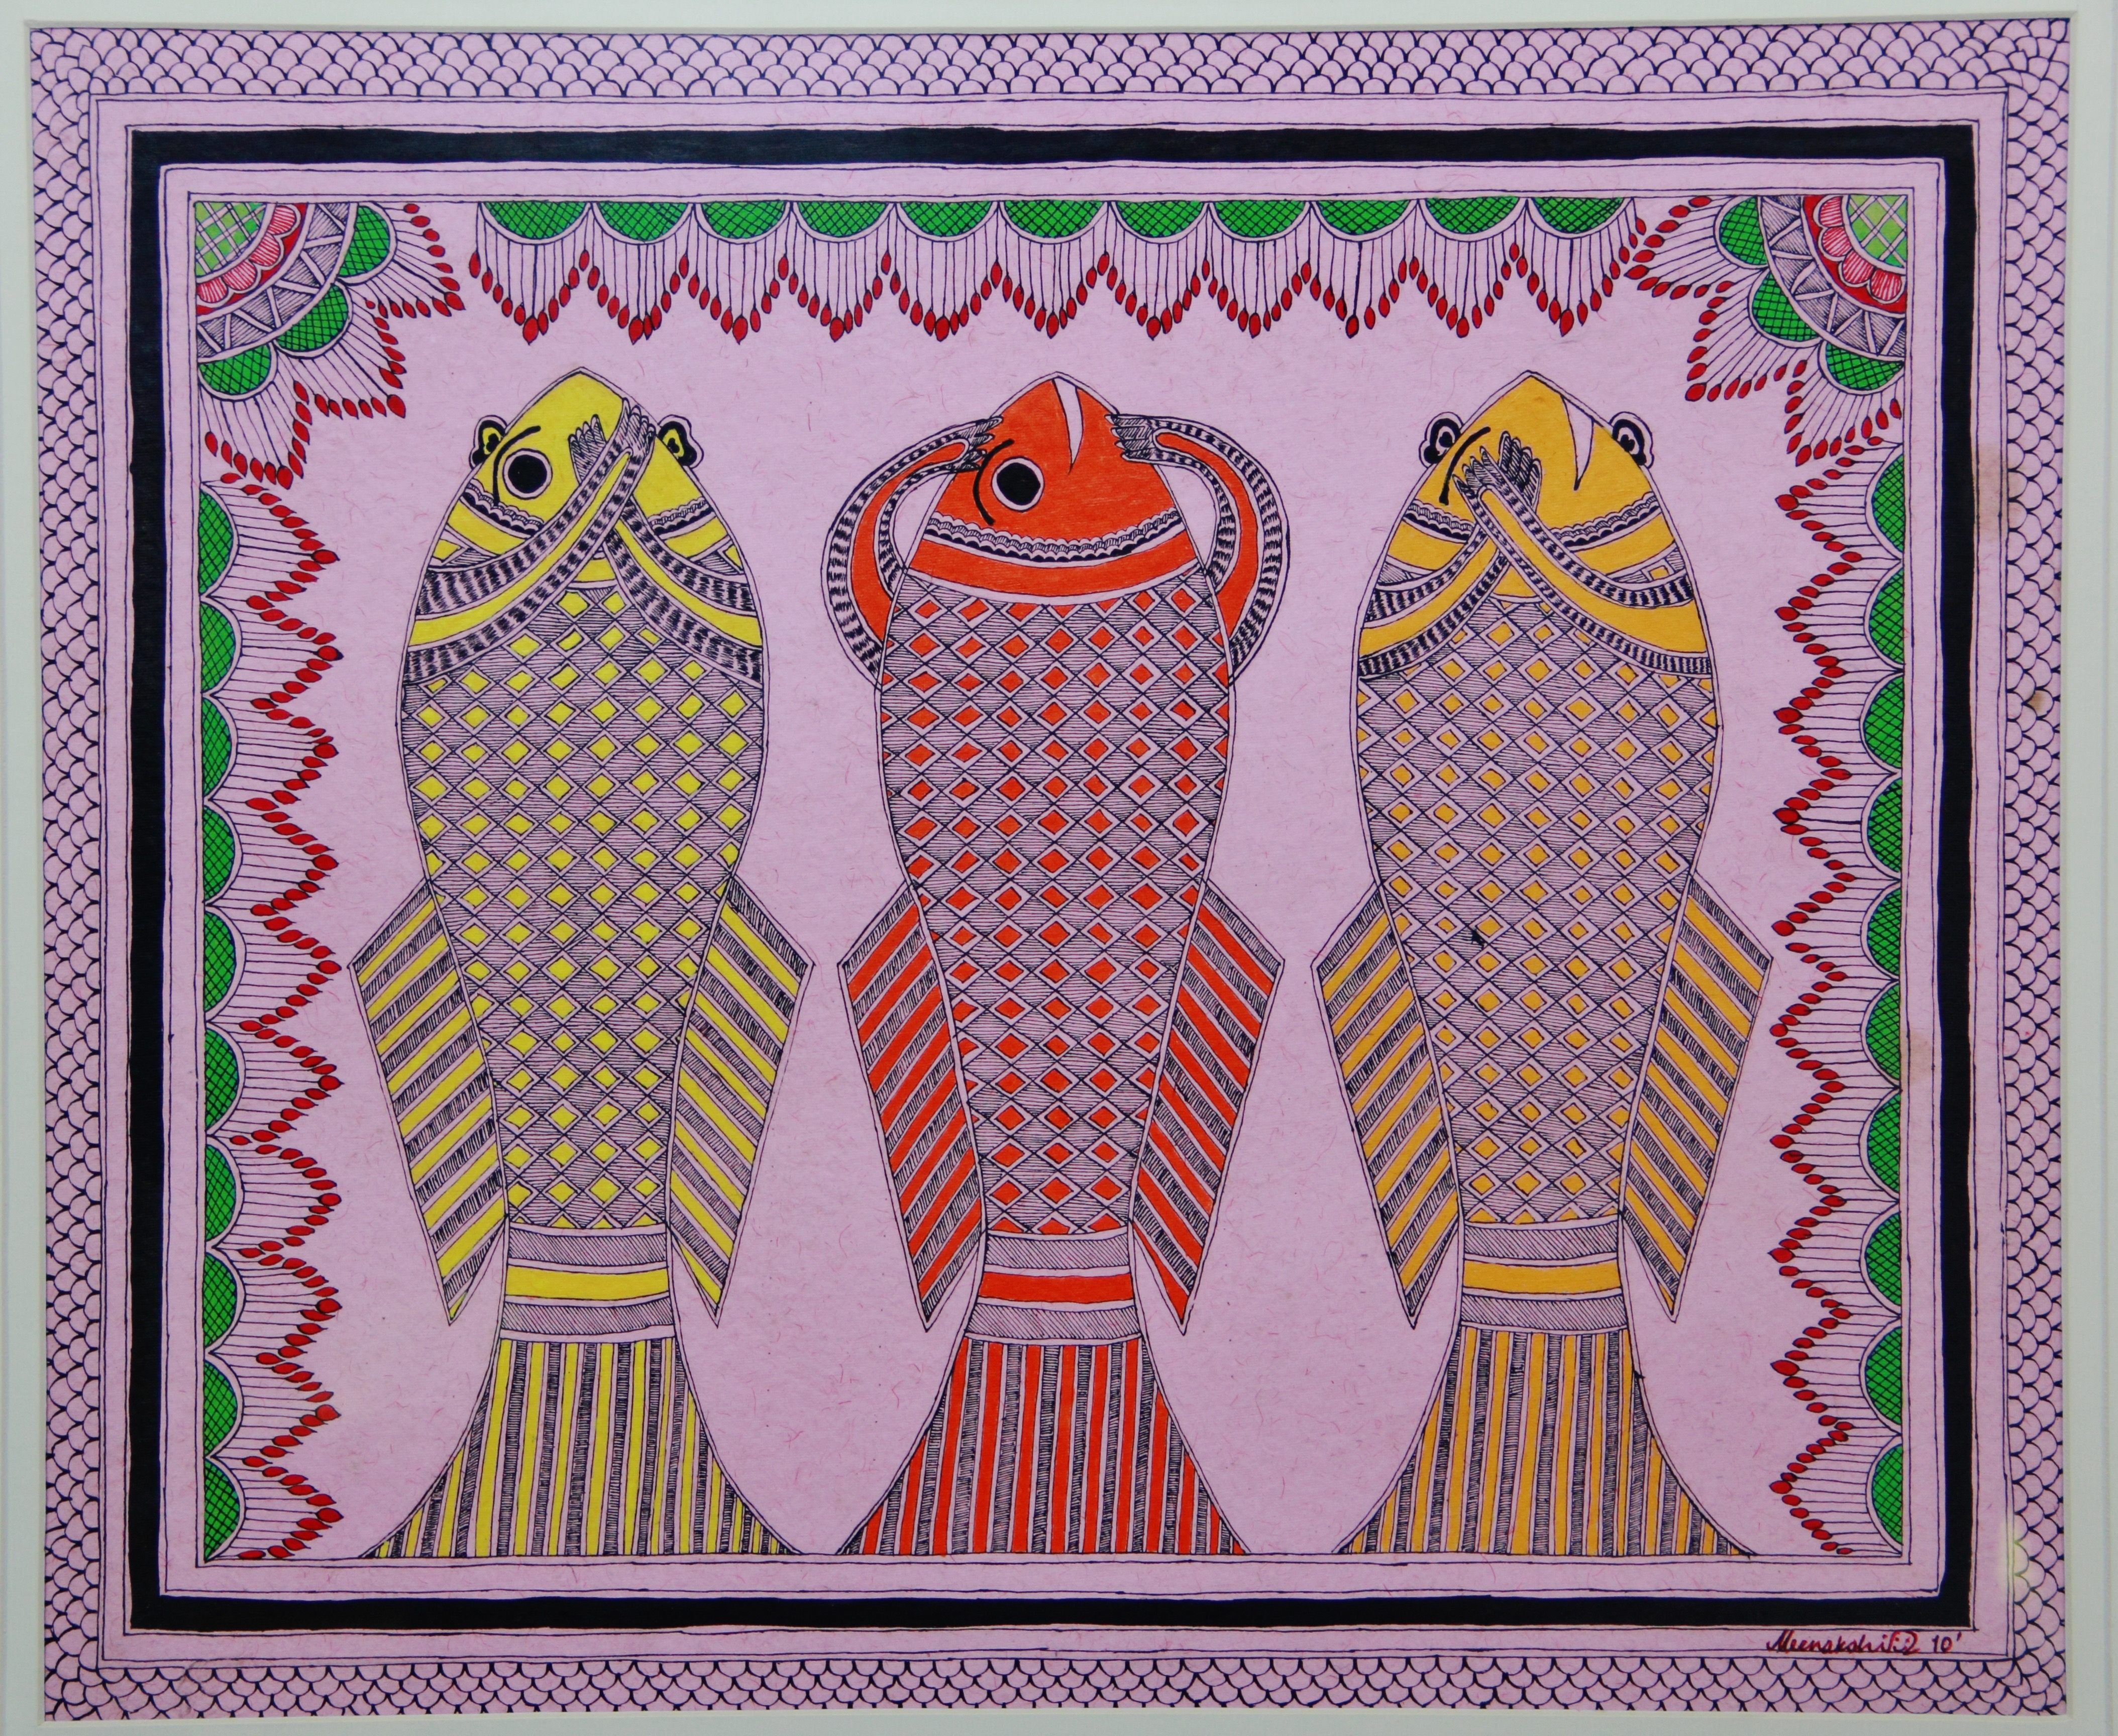 One of the earliest works in Madhubani Style.